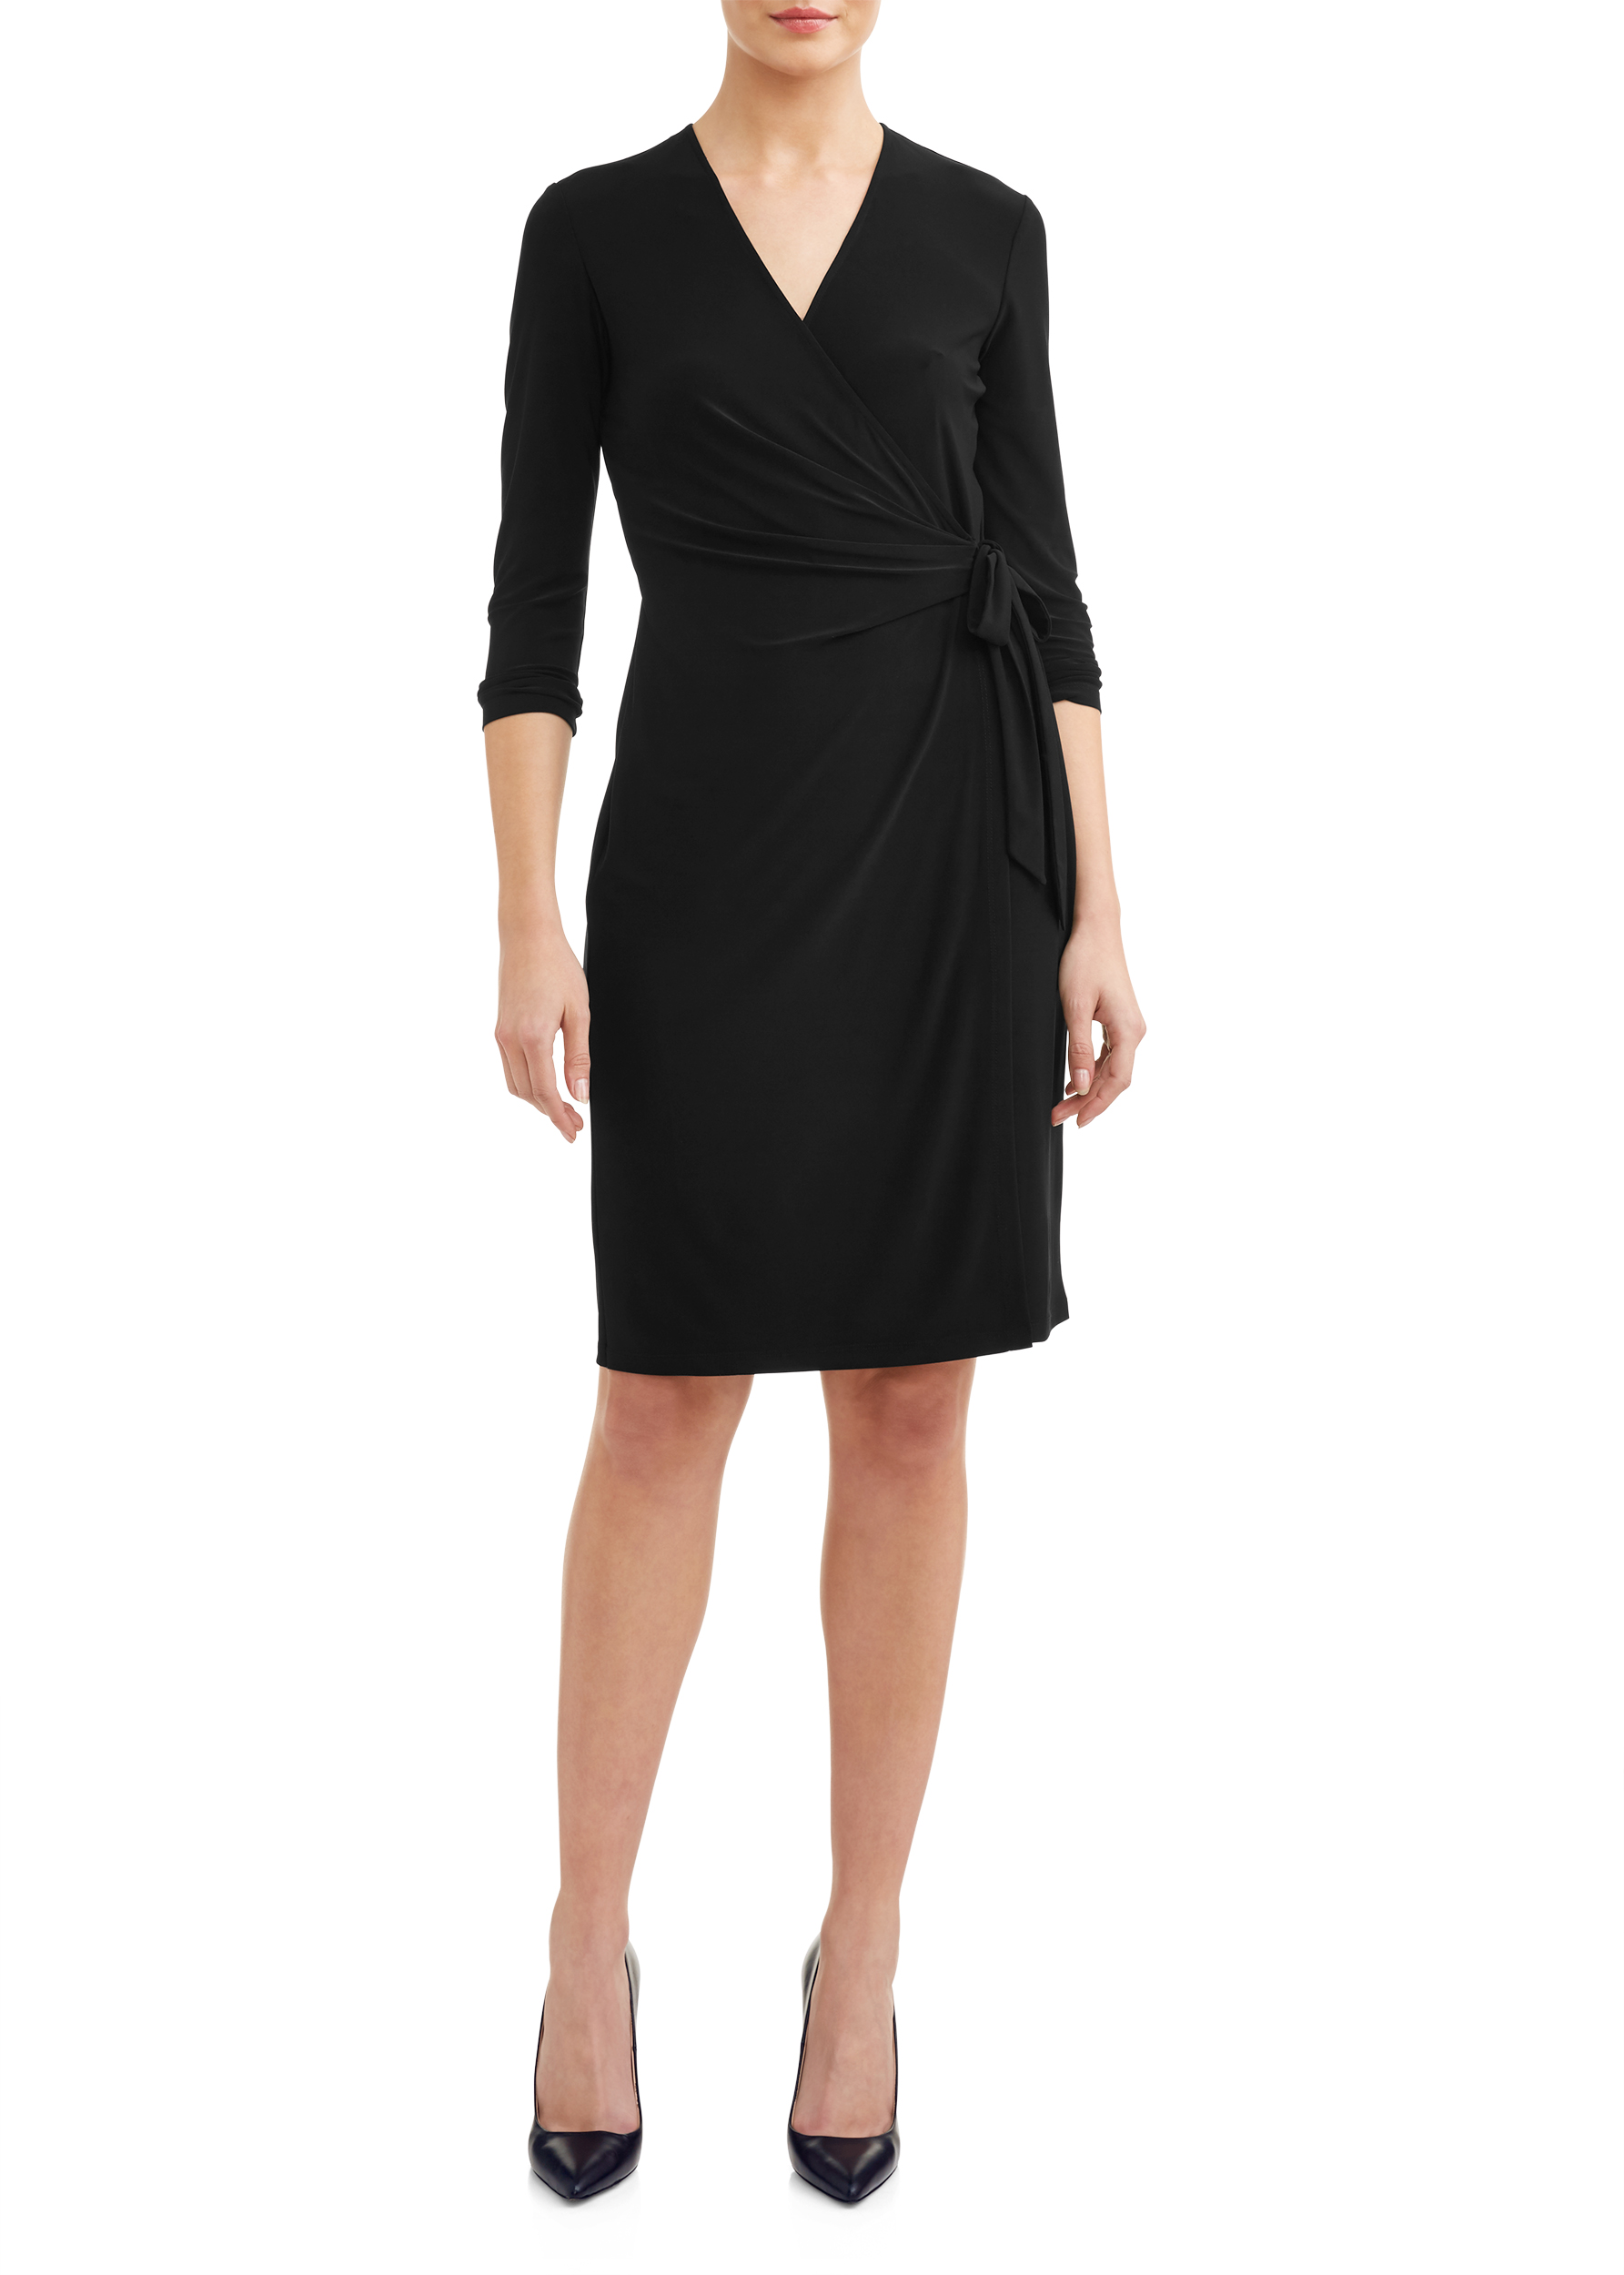 Women's Essential Wrap Dress